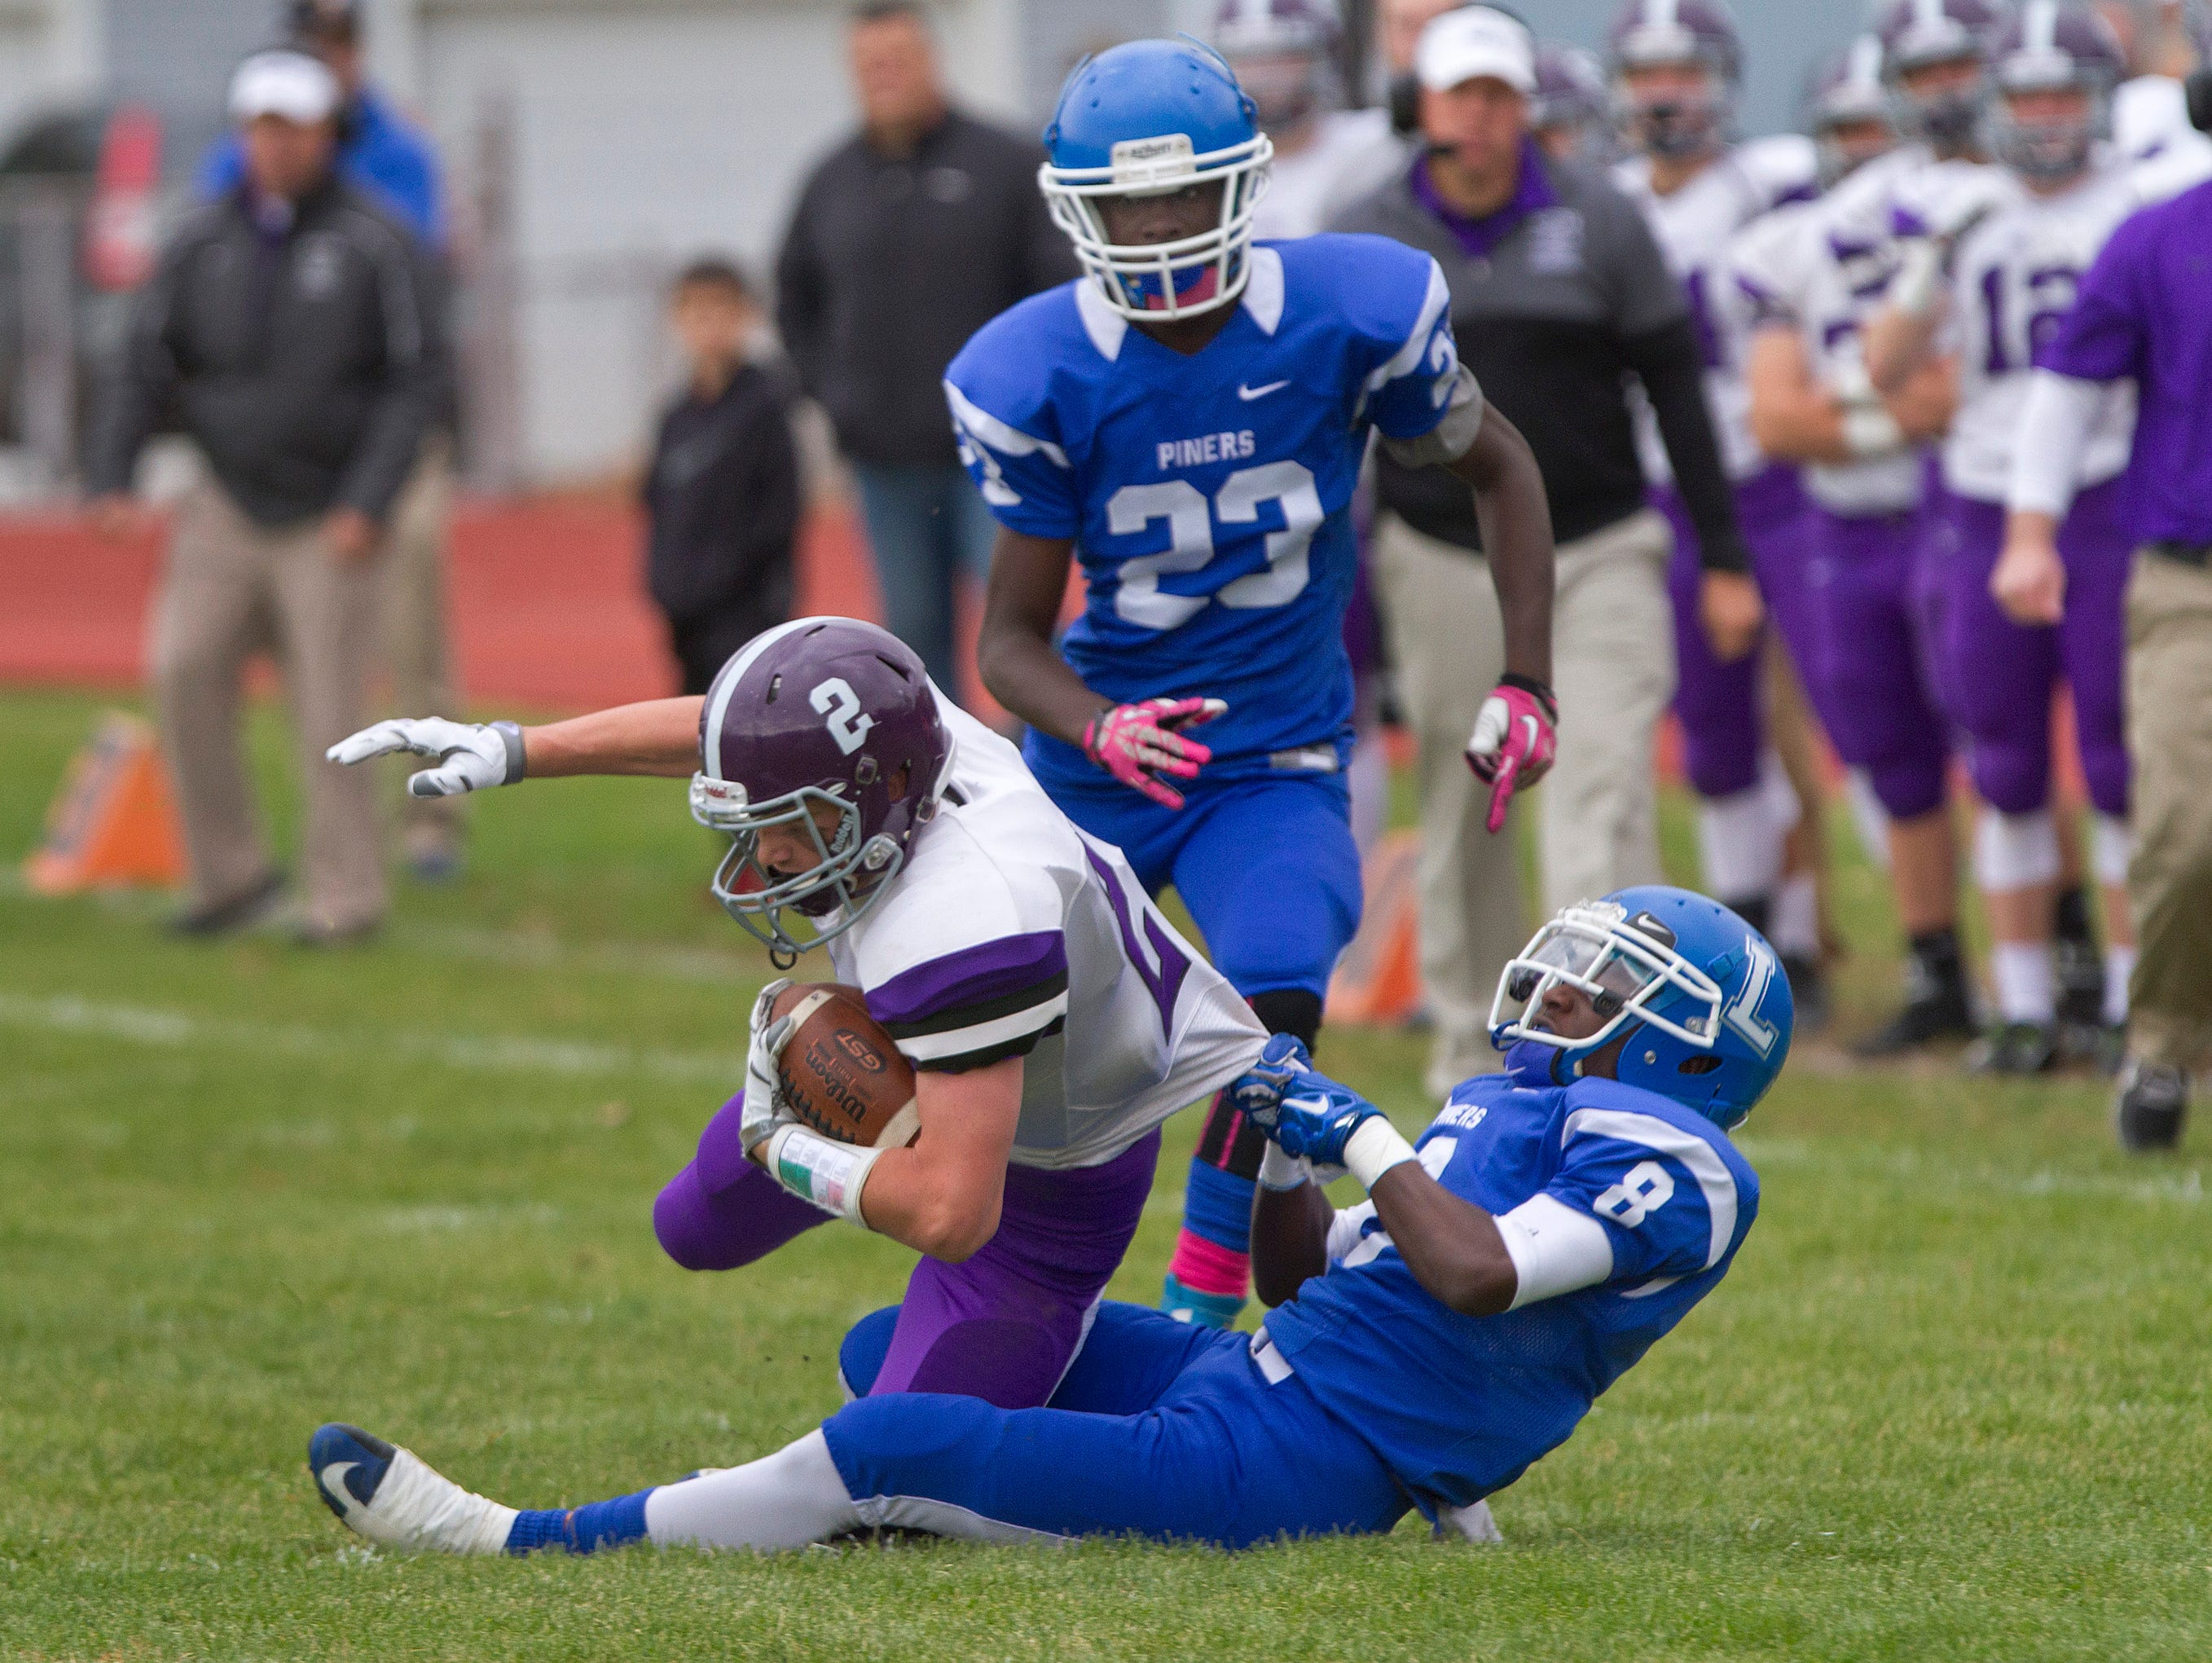 Lakewood's Honore Richardon wrestles Rumson's Lachlan Hull to the ground during Rumson-Fair Haven Football vs Lakewood in Lakewood, NJ on October 24, 2015